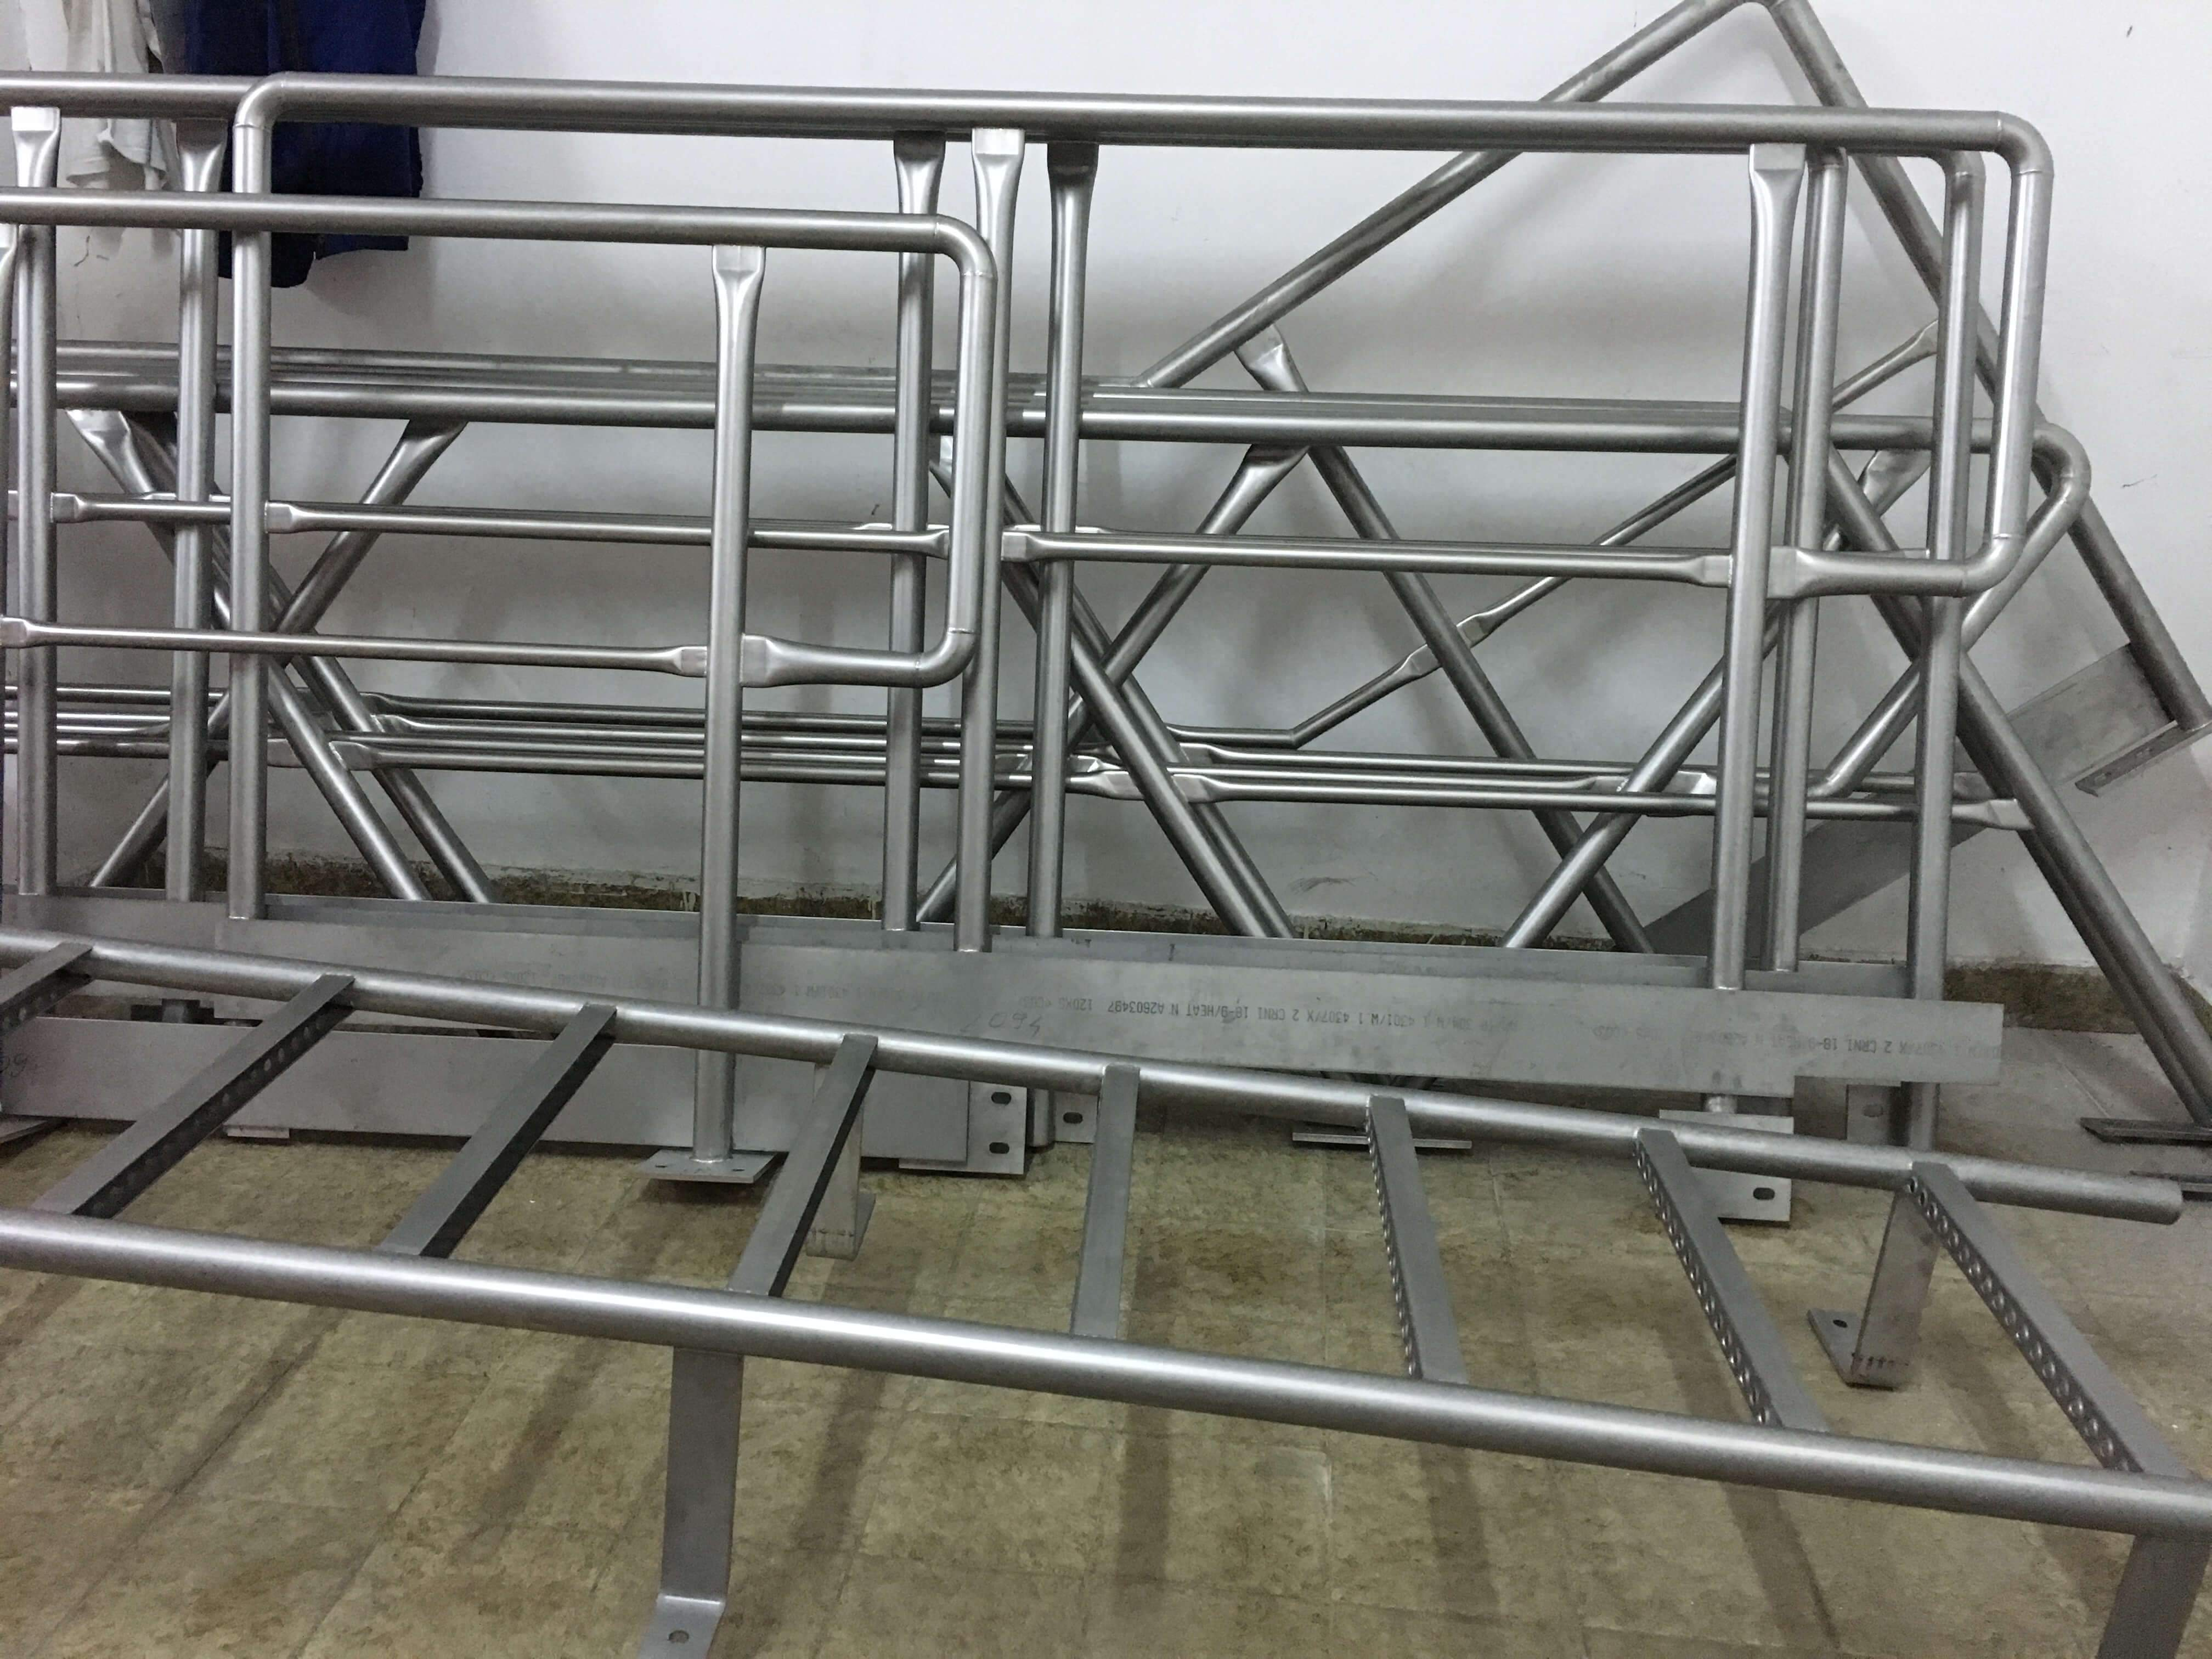 Manufacture of industrial stainless steel fences